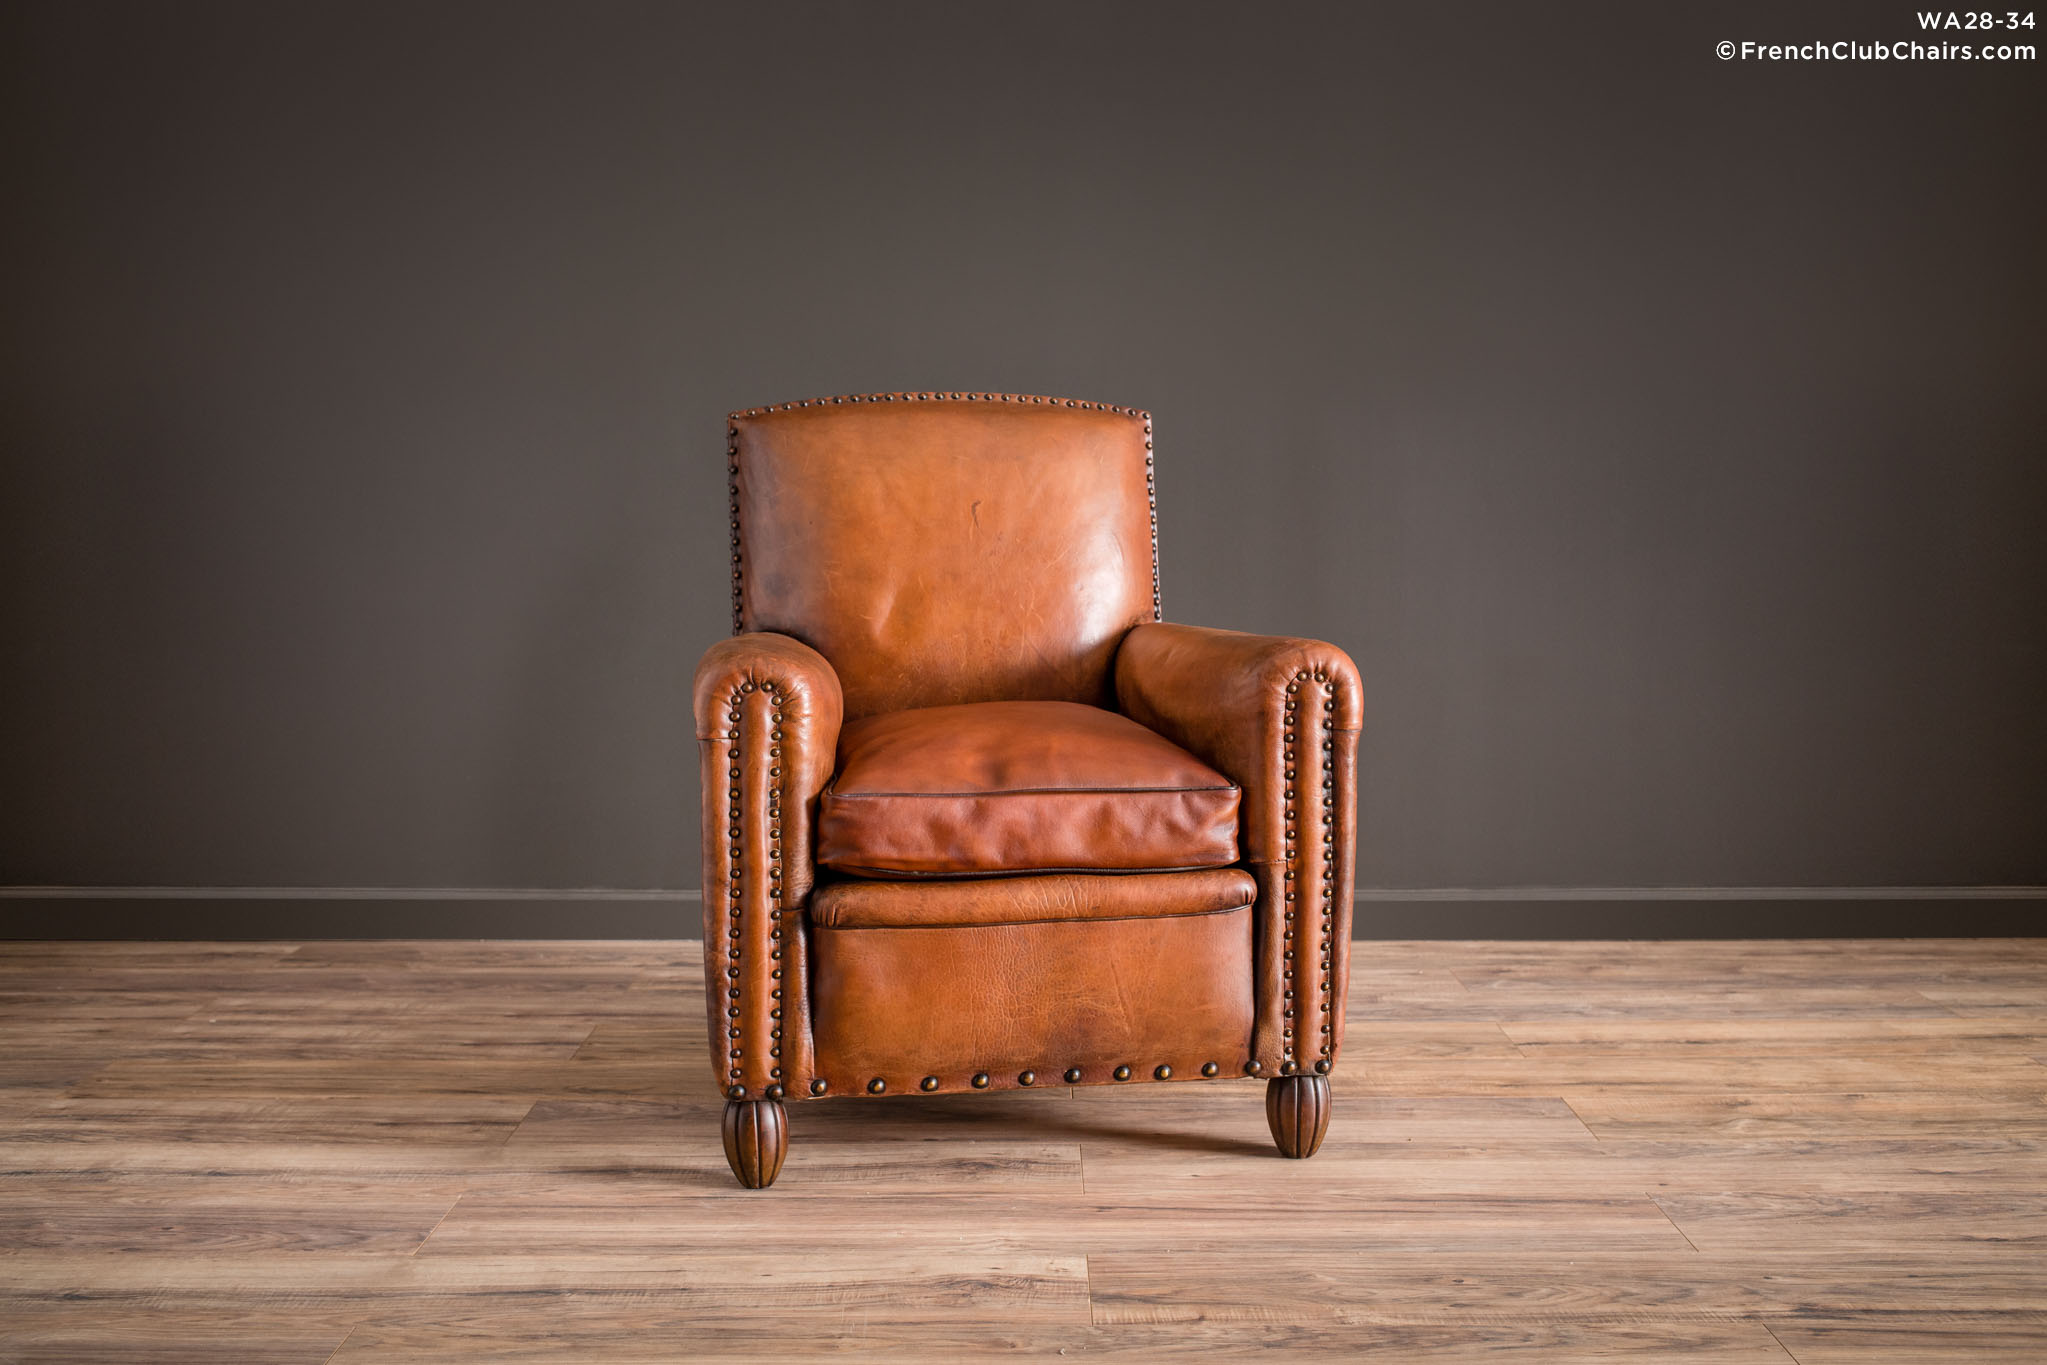 WA_28-32_Moutenee_Library_Solo_R_1TQ1-williams-antiks-leather-french-club-chair-wa_fcccom